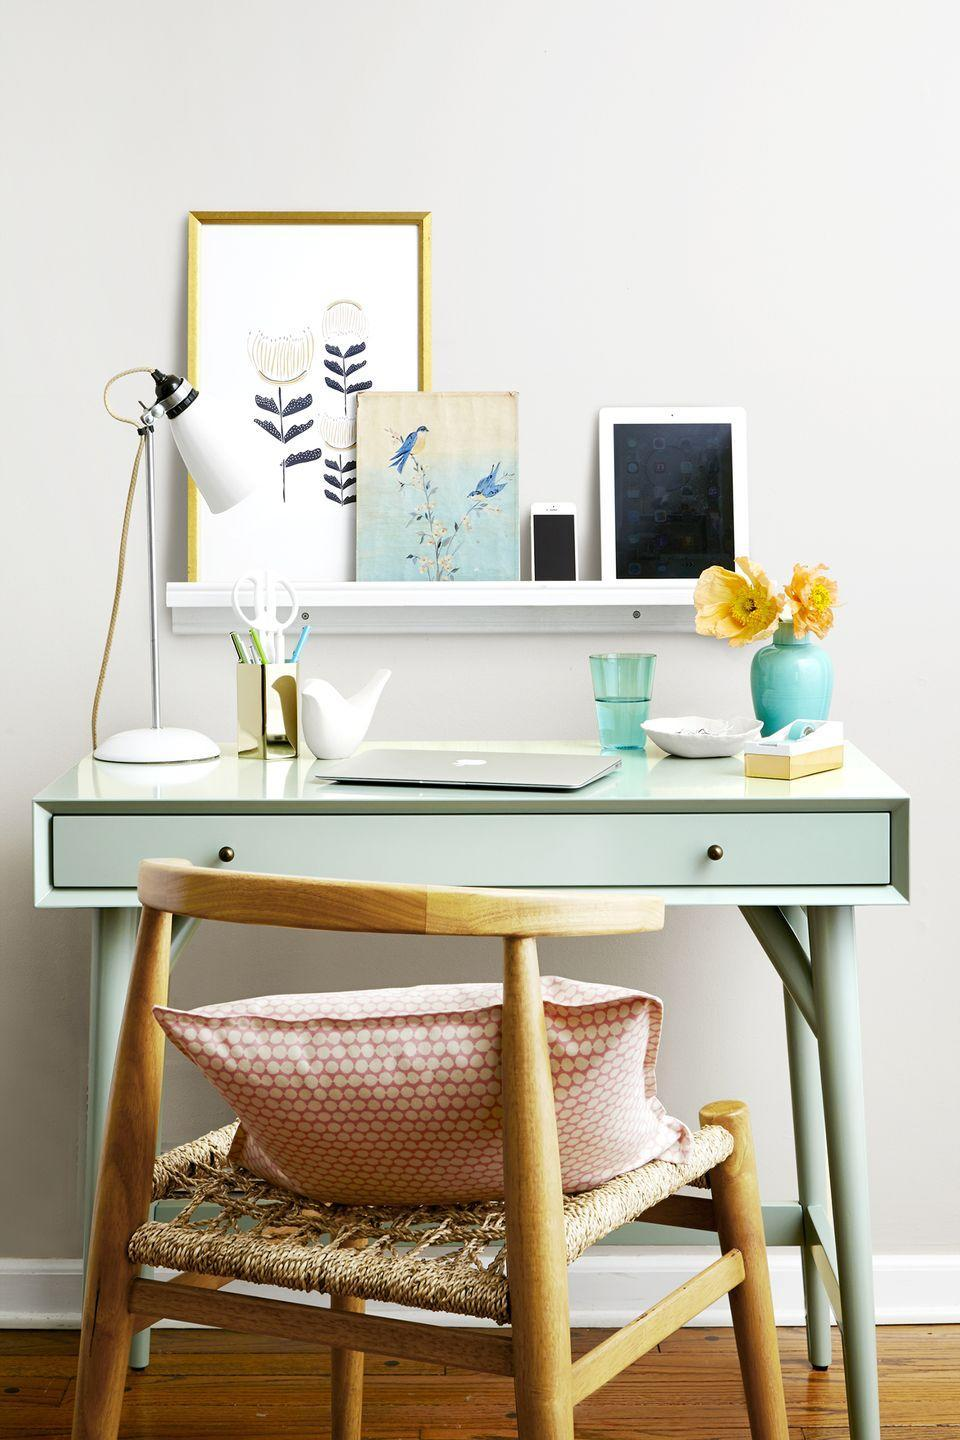 """<p>Expand your workspace by adding a sleek wooden shelf at eye level. The rest is up to you: Display artwork, or use it as a handy storage spot for gadgets.</p><p><strong>RELATED</strong>: <a href=""""https://www.goodhousekeeping.com/home/organizing/g25576393/desk-organization-ideas/"""" rel=""""nofollow noopener"""" target=""""_blank"""" data-ylk=""""slk:18 Desk Organization Ideas That'll Inspire Productivity In Your Office"""" class=""""link rapid-noclick-resp"""">18 Desk Organization Ideas That'll Inspire Productivity In Your Office</a> </p>"""